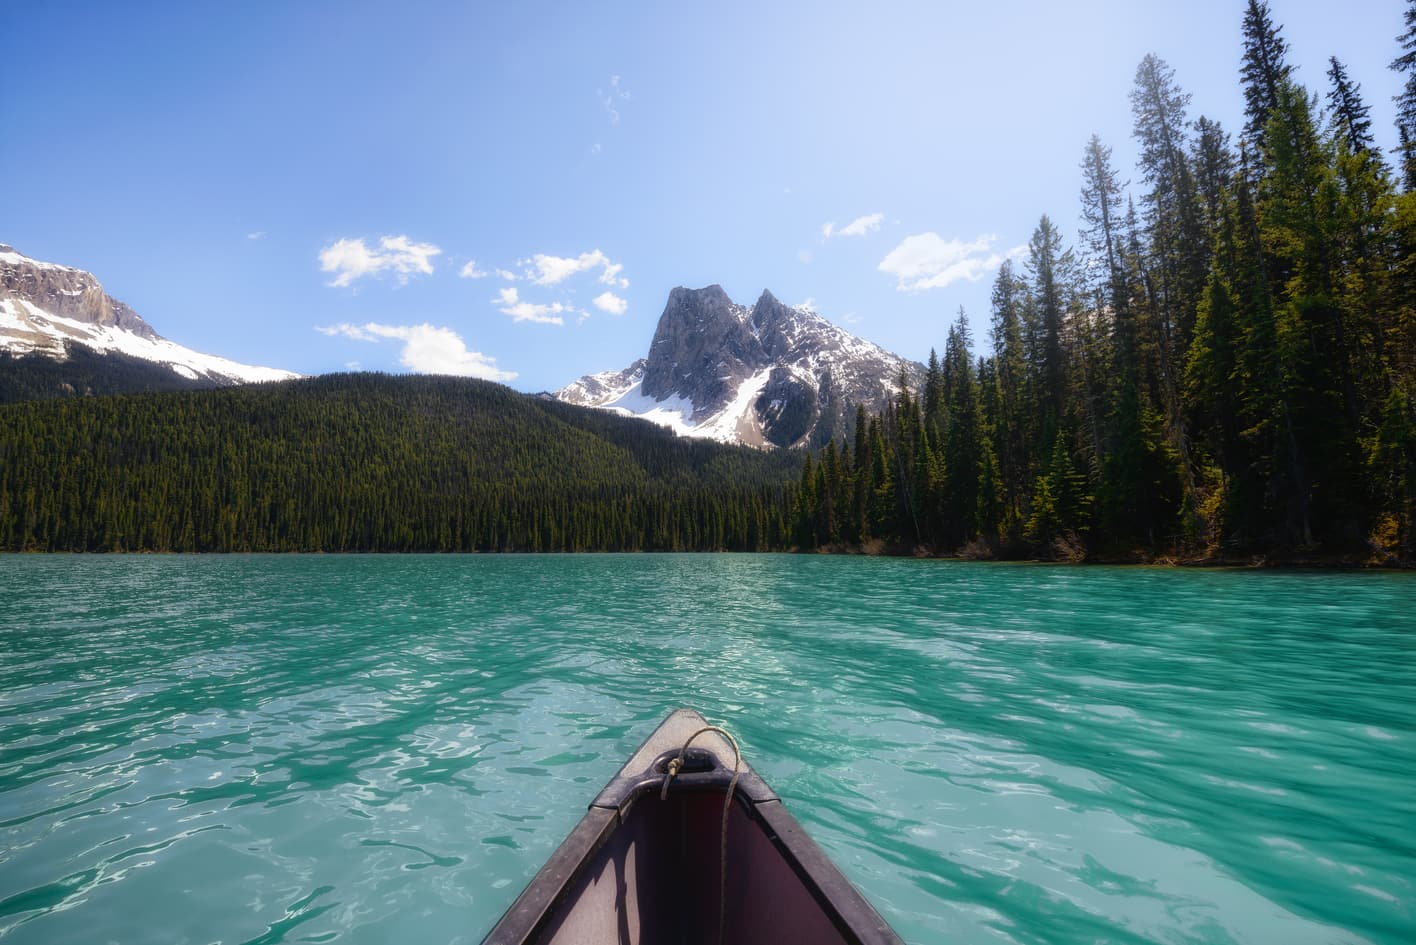 kayaking in emerald lake price activities